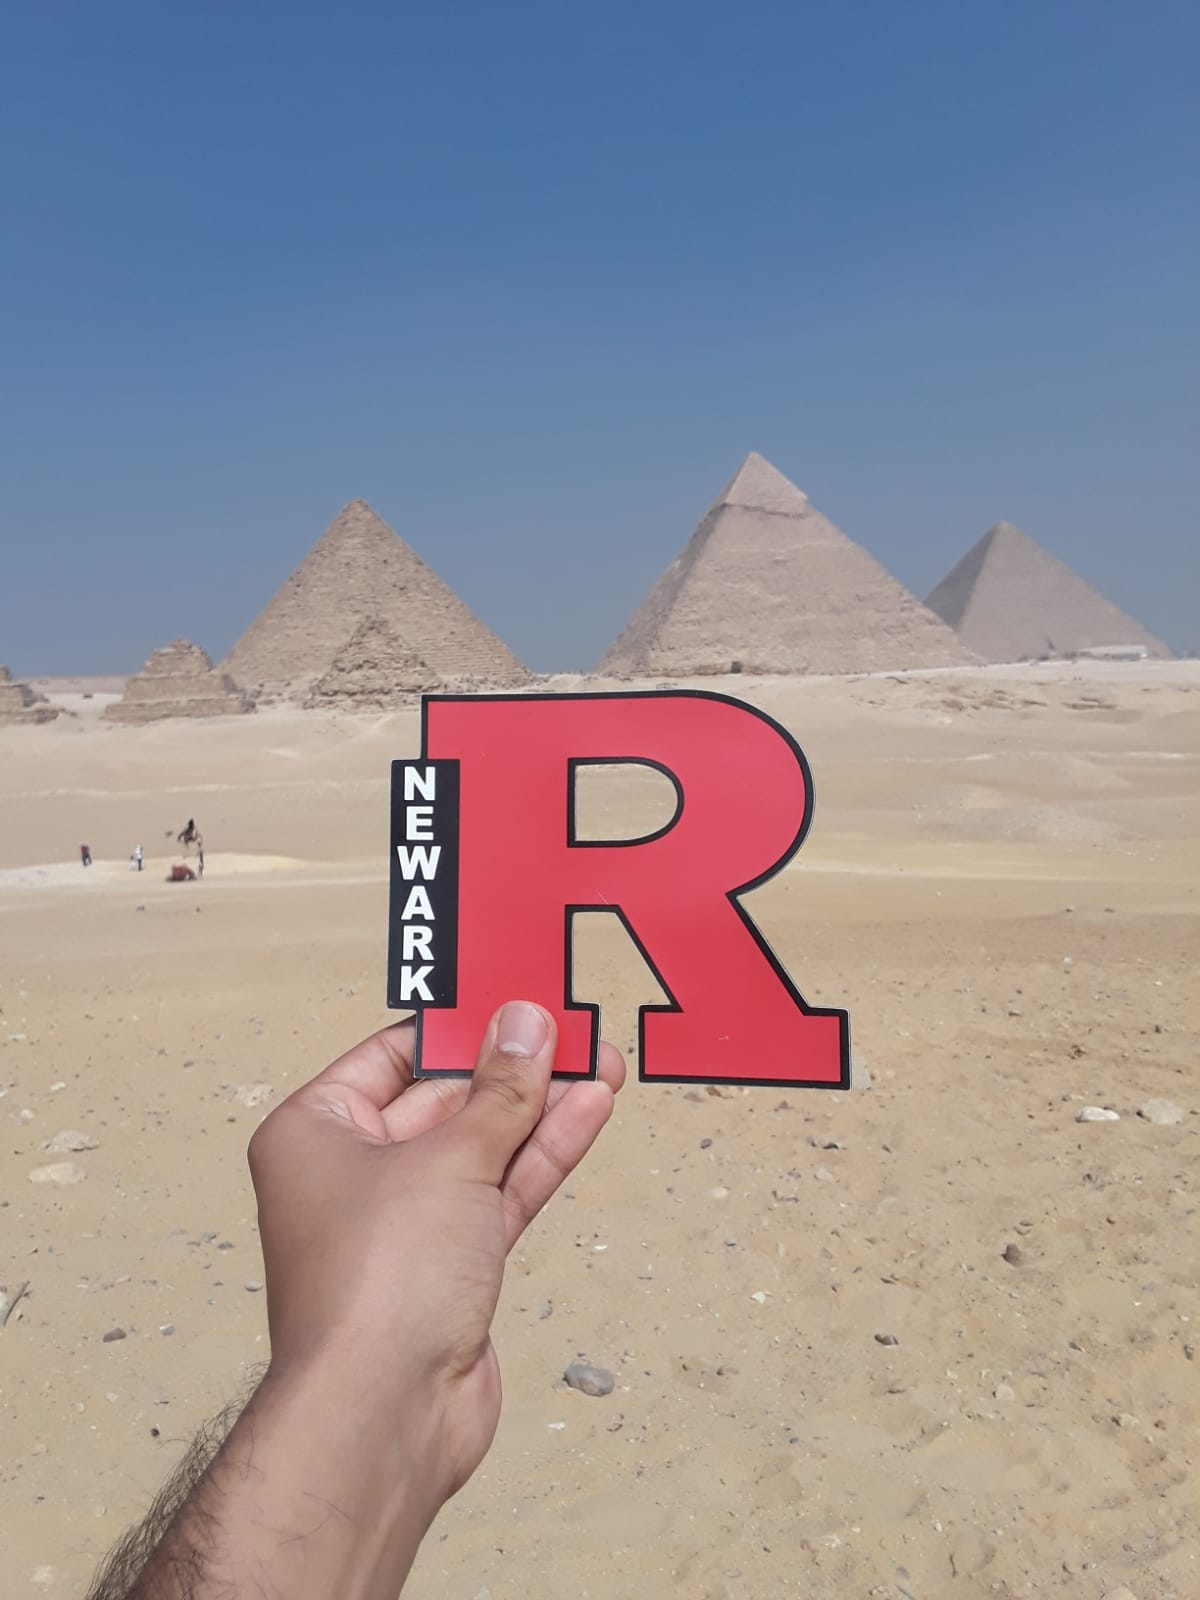 R-sticker in front of Pyramids in Giza